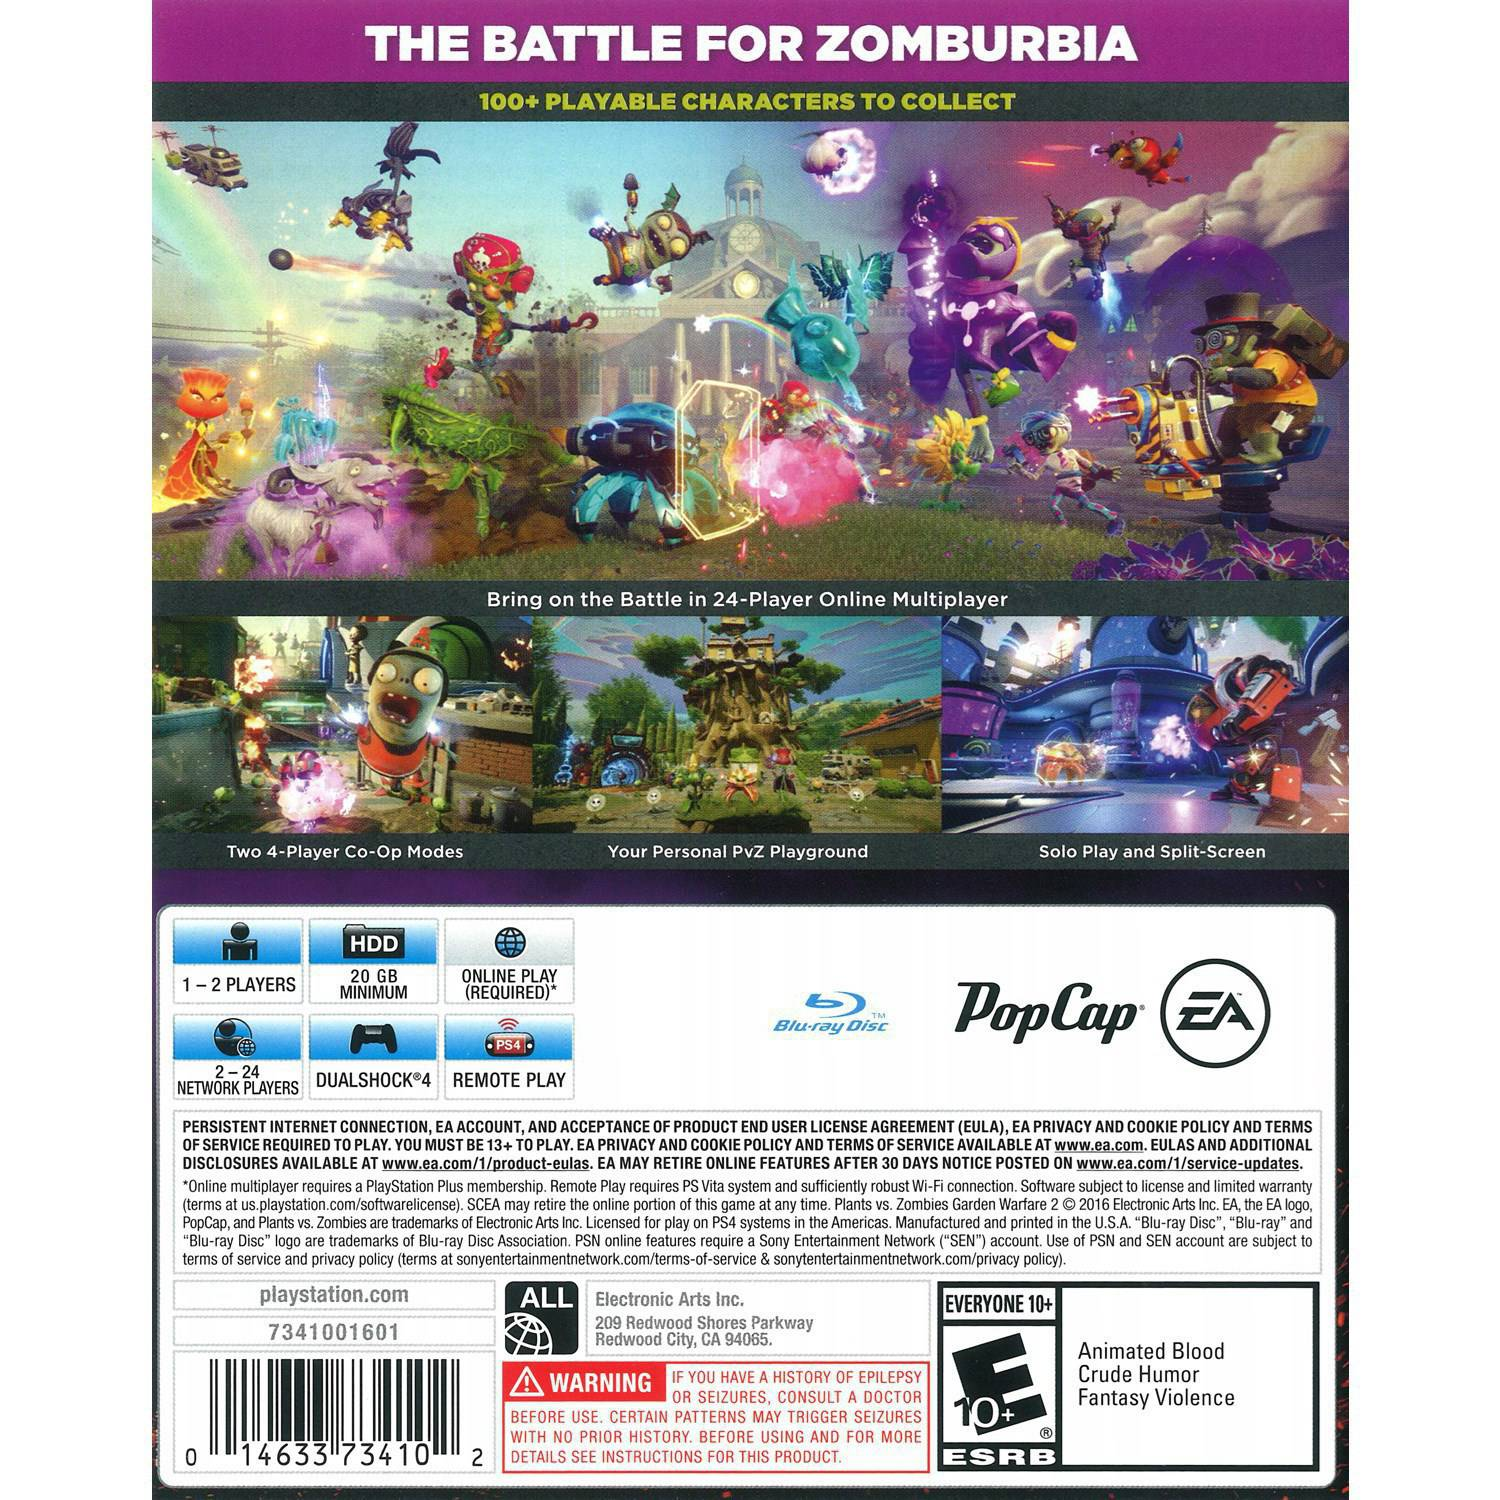 plants vs zombies garden warfare 2 electronic arts playstation 4 014633734102 walmartcom - Plants Vs Zombies Garden Warfare 2 Xbox 360